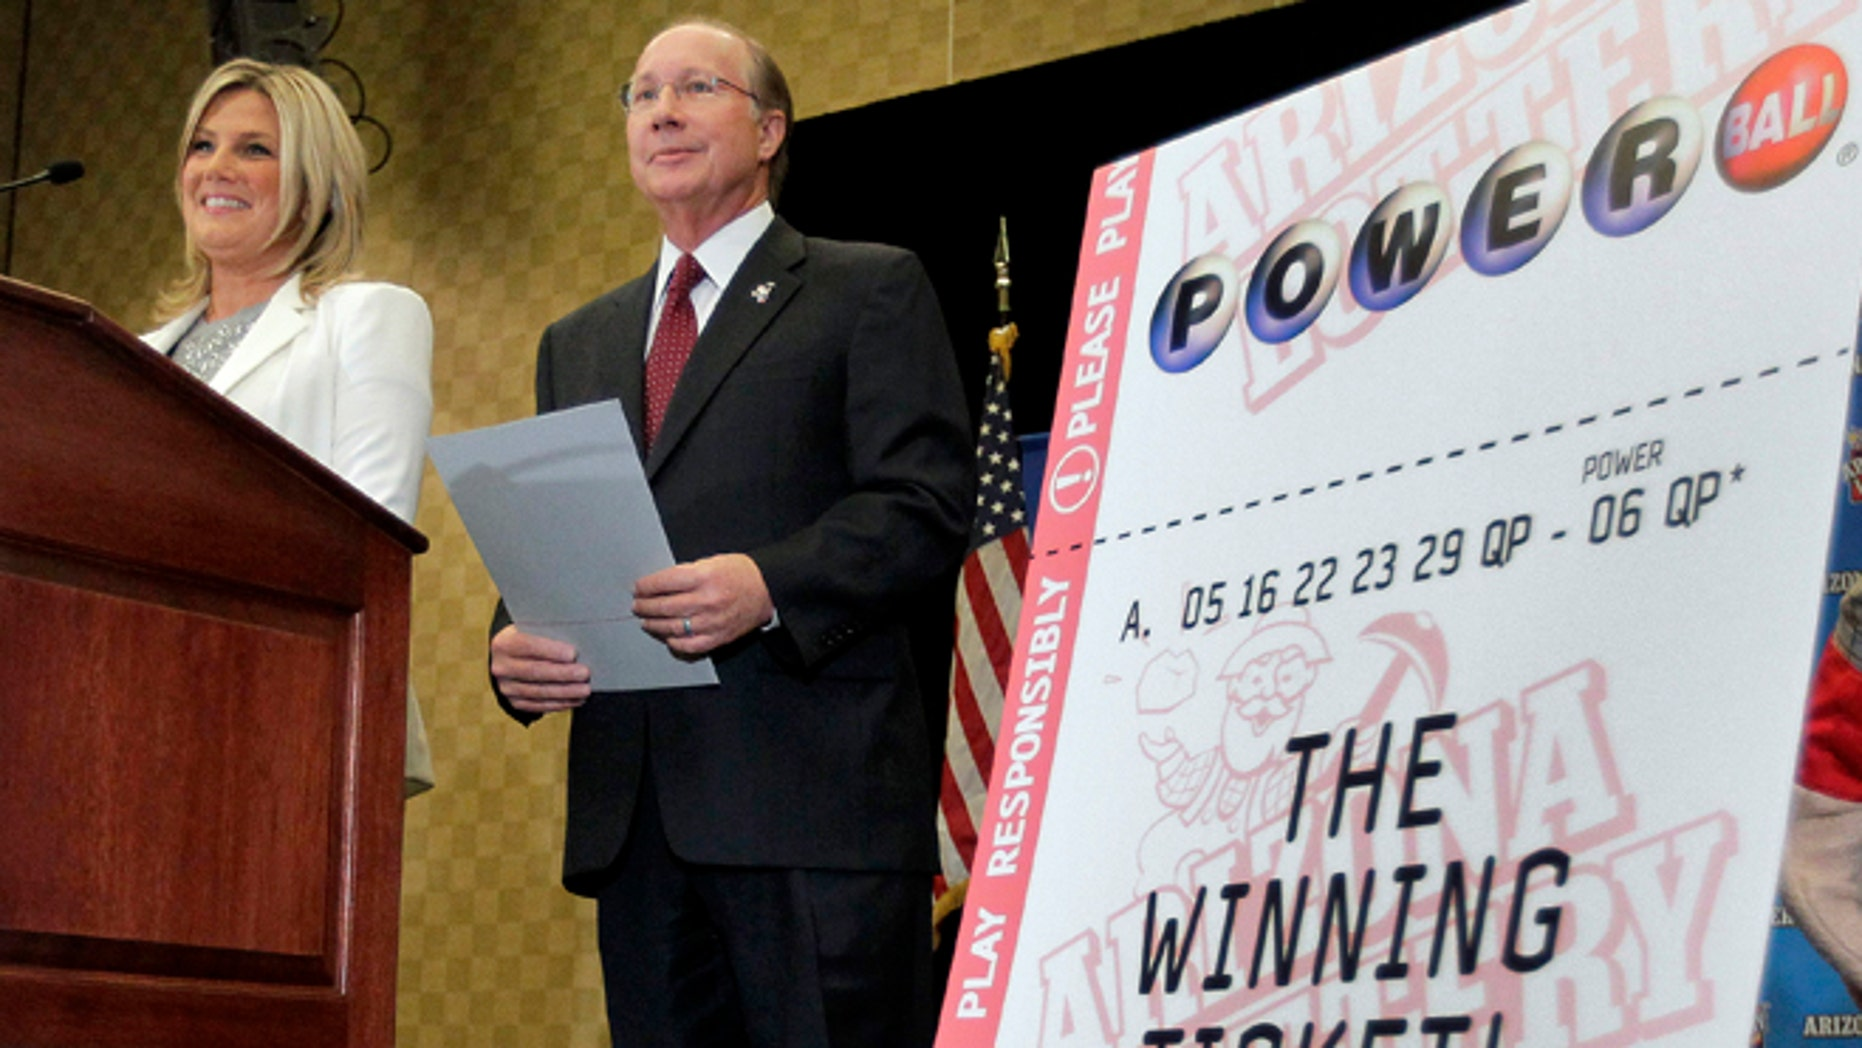 Dec. 7, 2012: Arizona Lottery Director of Budget, Products and Communications Karen Bach, left, and Arizona Lottery Executive Director Jeff Hatch-Miller stand next to an enlargement of the winning $587.5 Million Powerball ticket during a news conference in Scottsdale, Ariz.